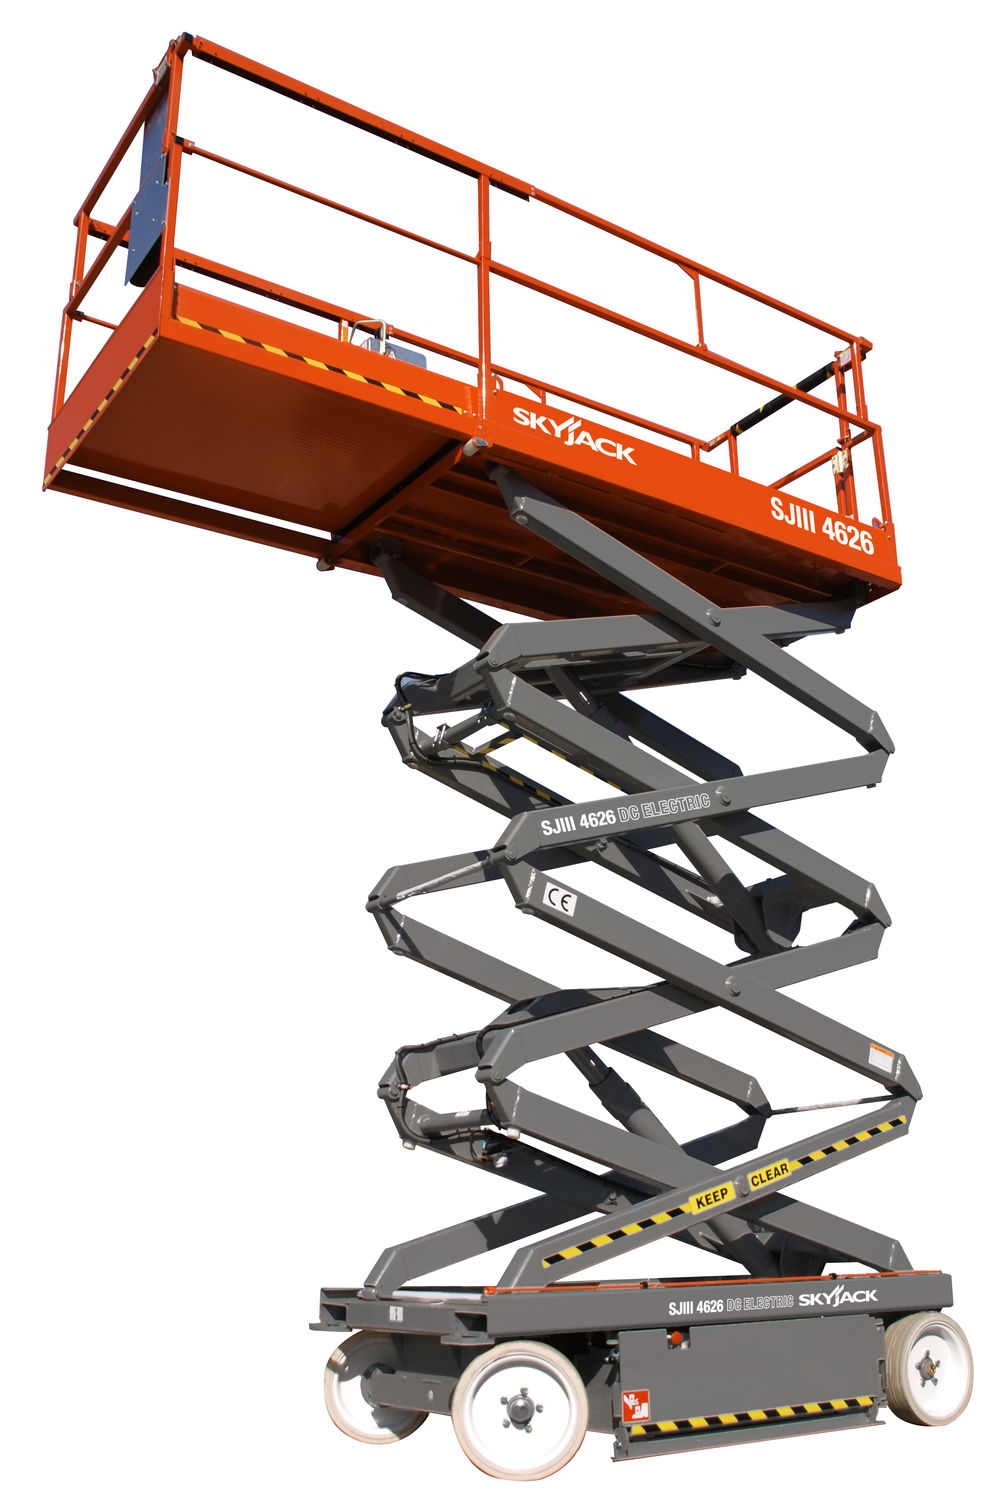 skyjack scissor lift operators manual